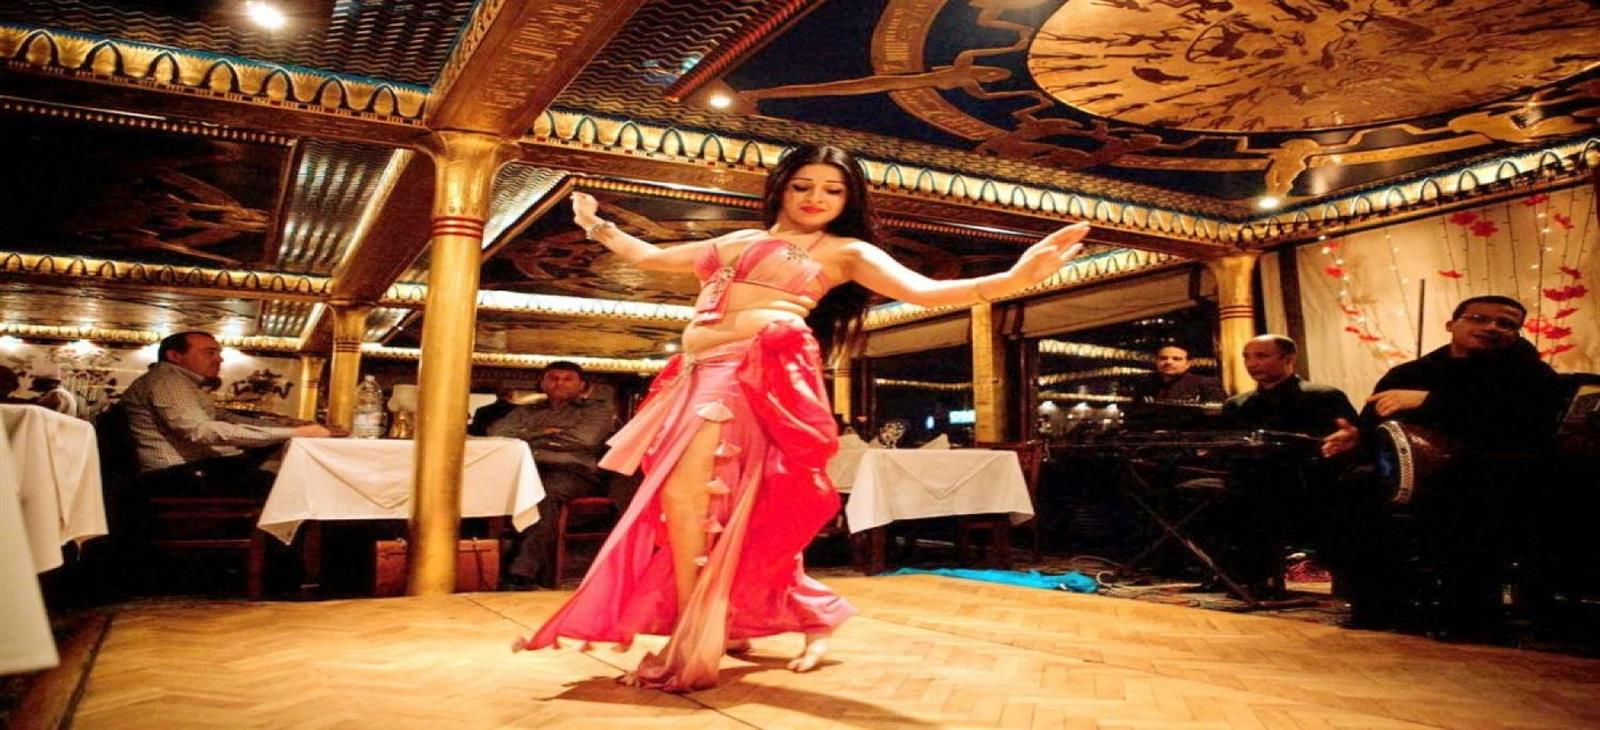 belly dance shows in cairo